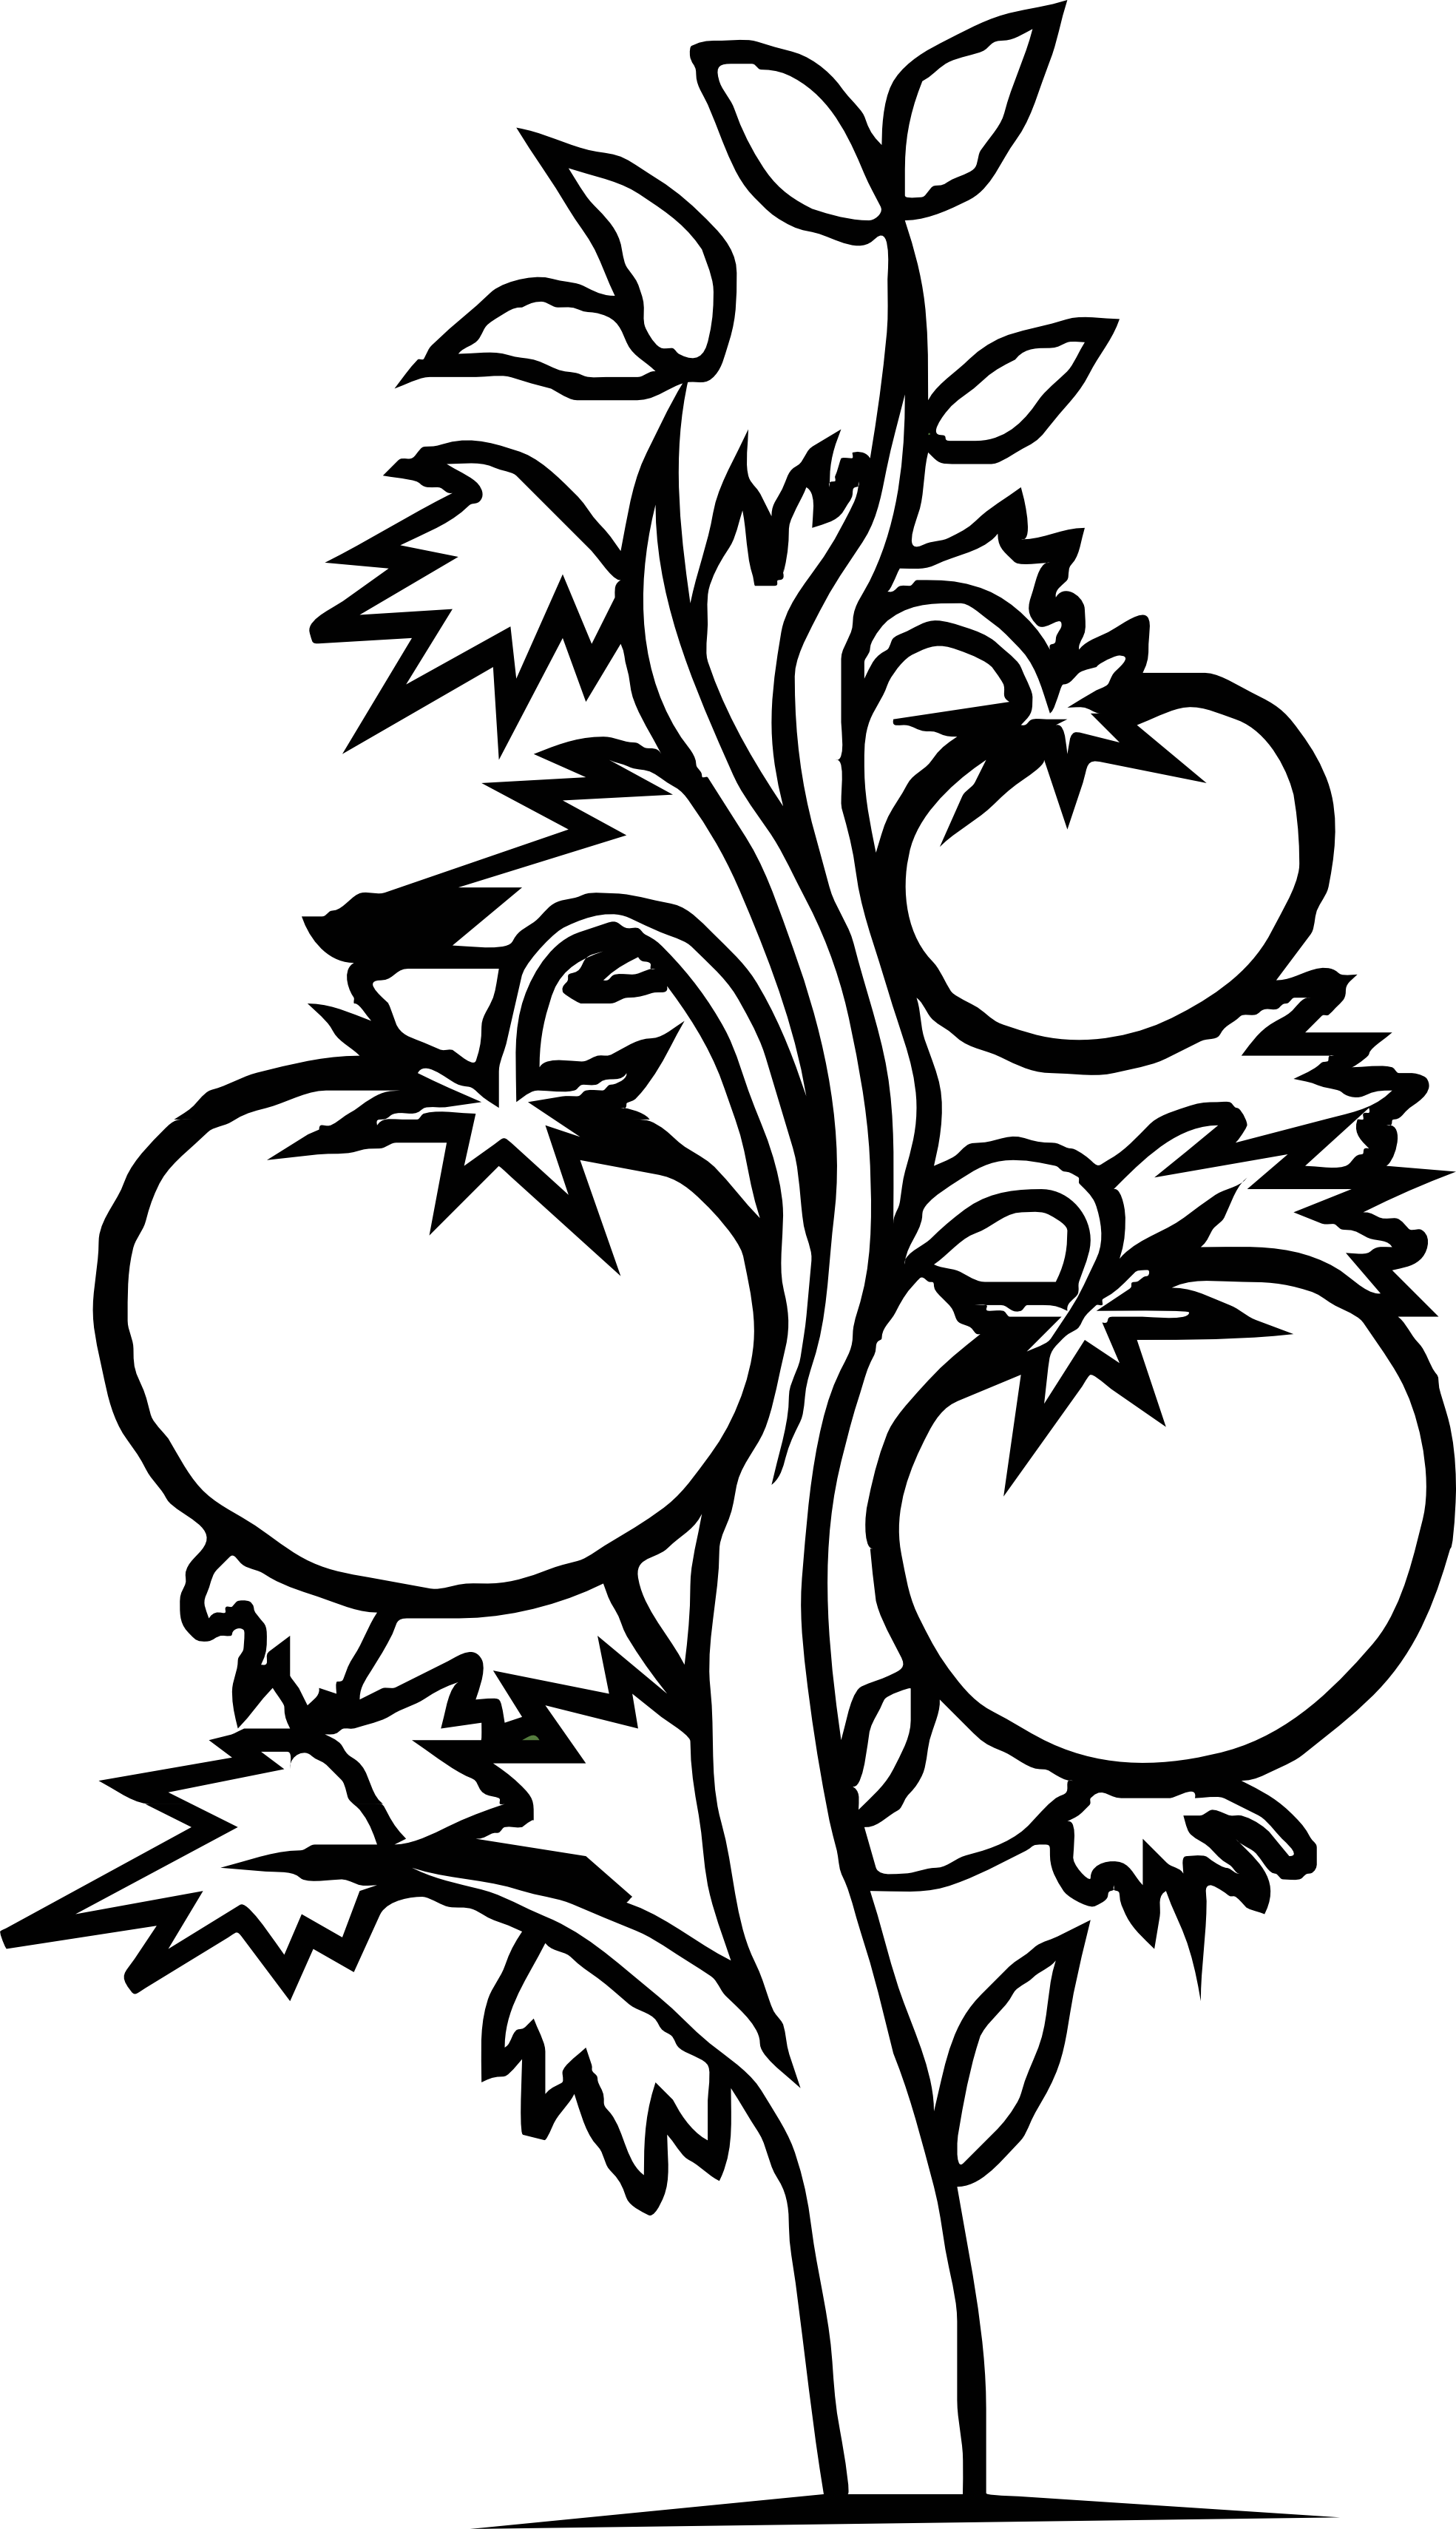 Bush tree clipart black and white.